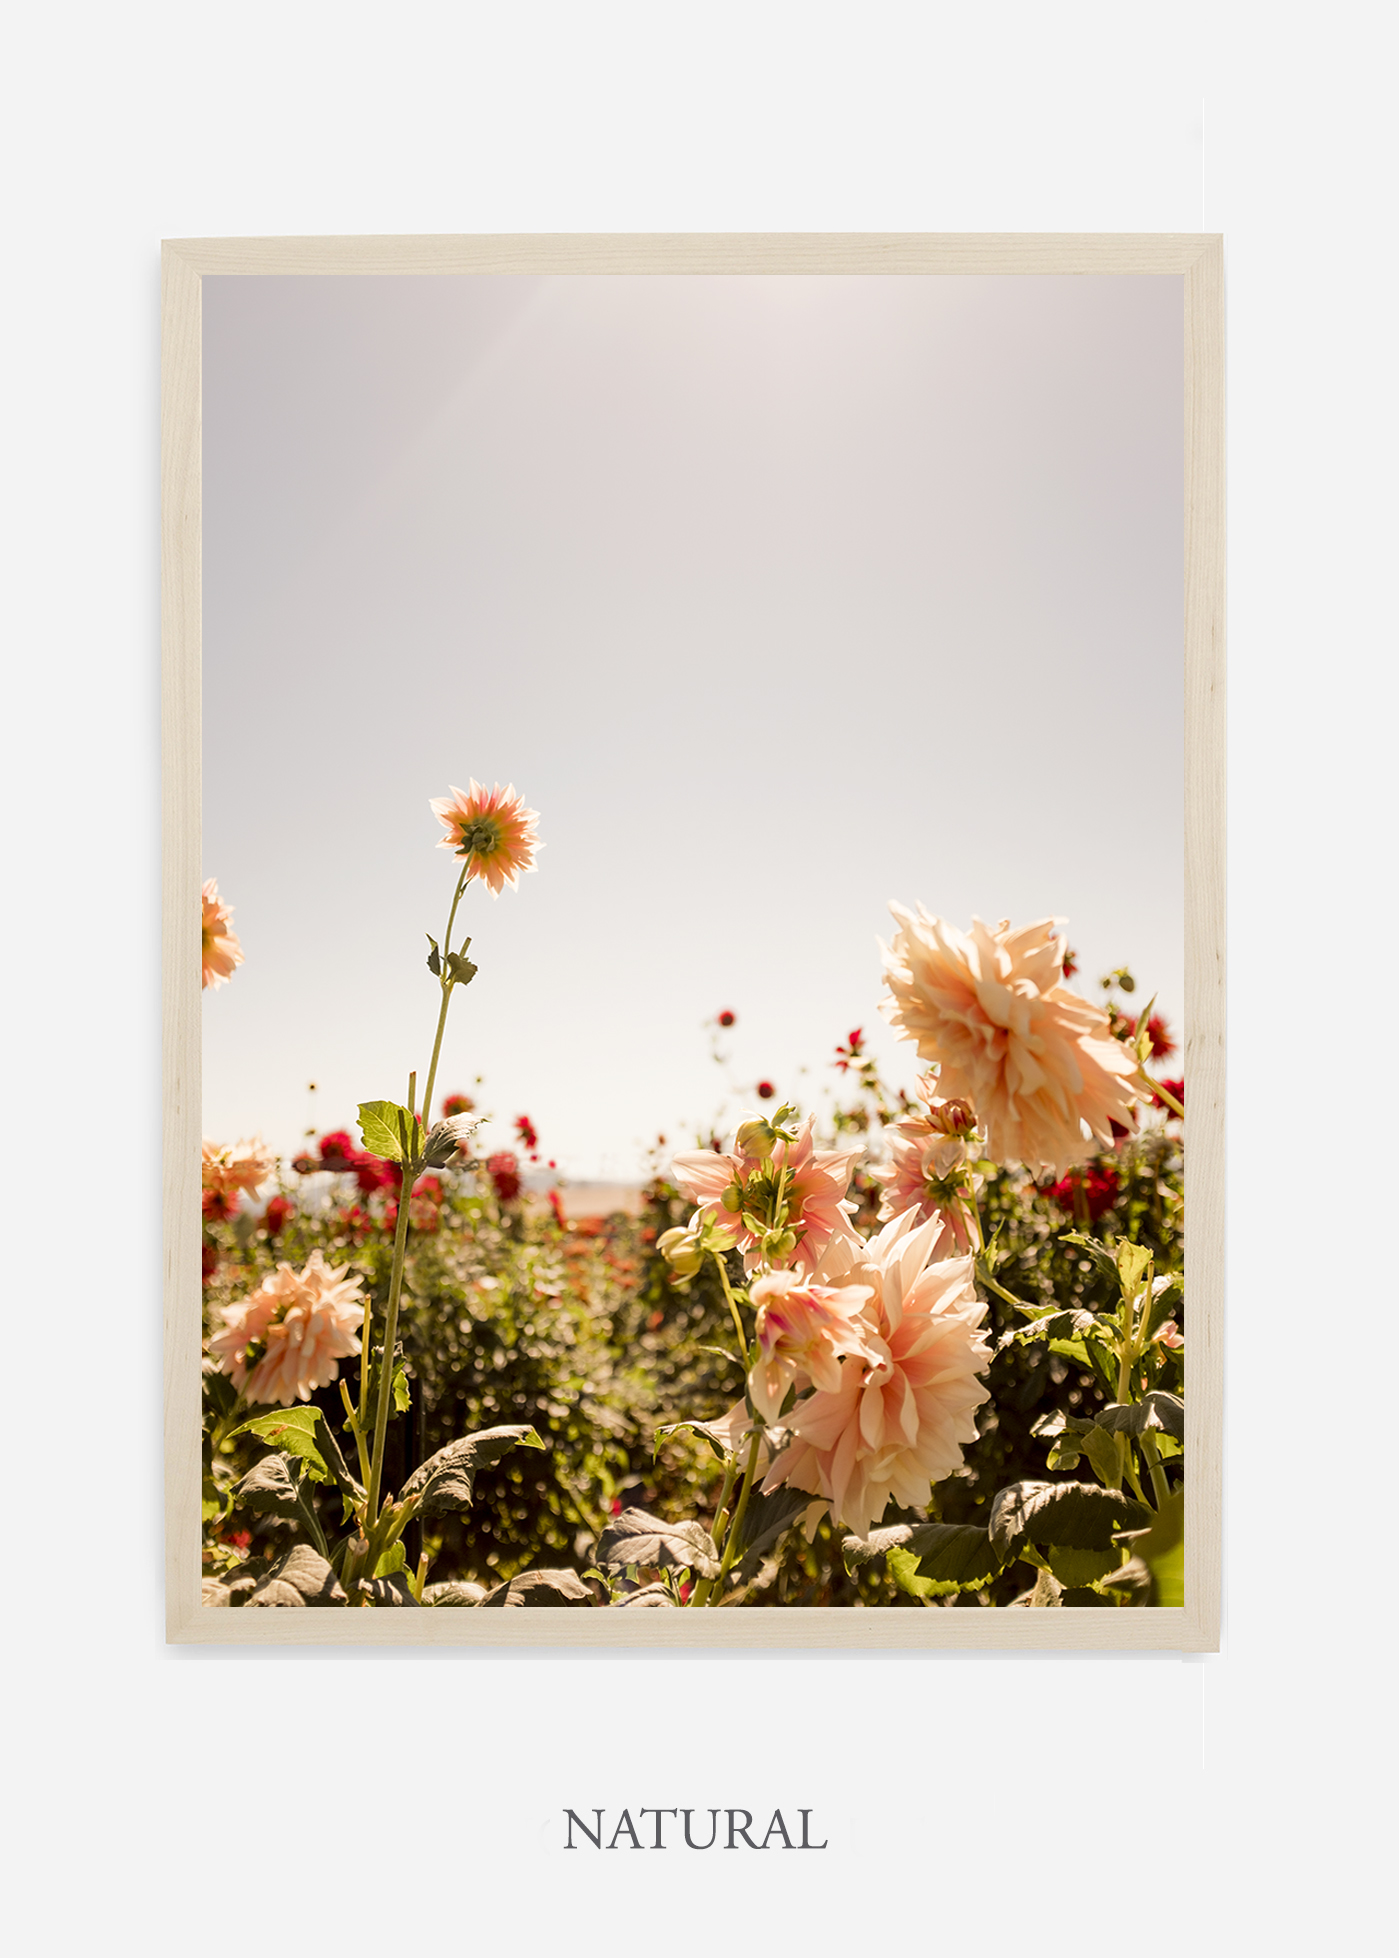 DahliaNo.6-natural-frame-interior-design-botanical-print-art-wilder-california-wilder-paper.jpg